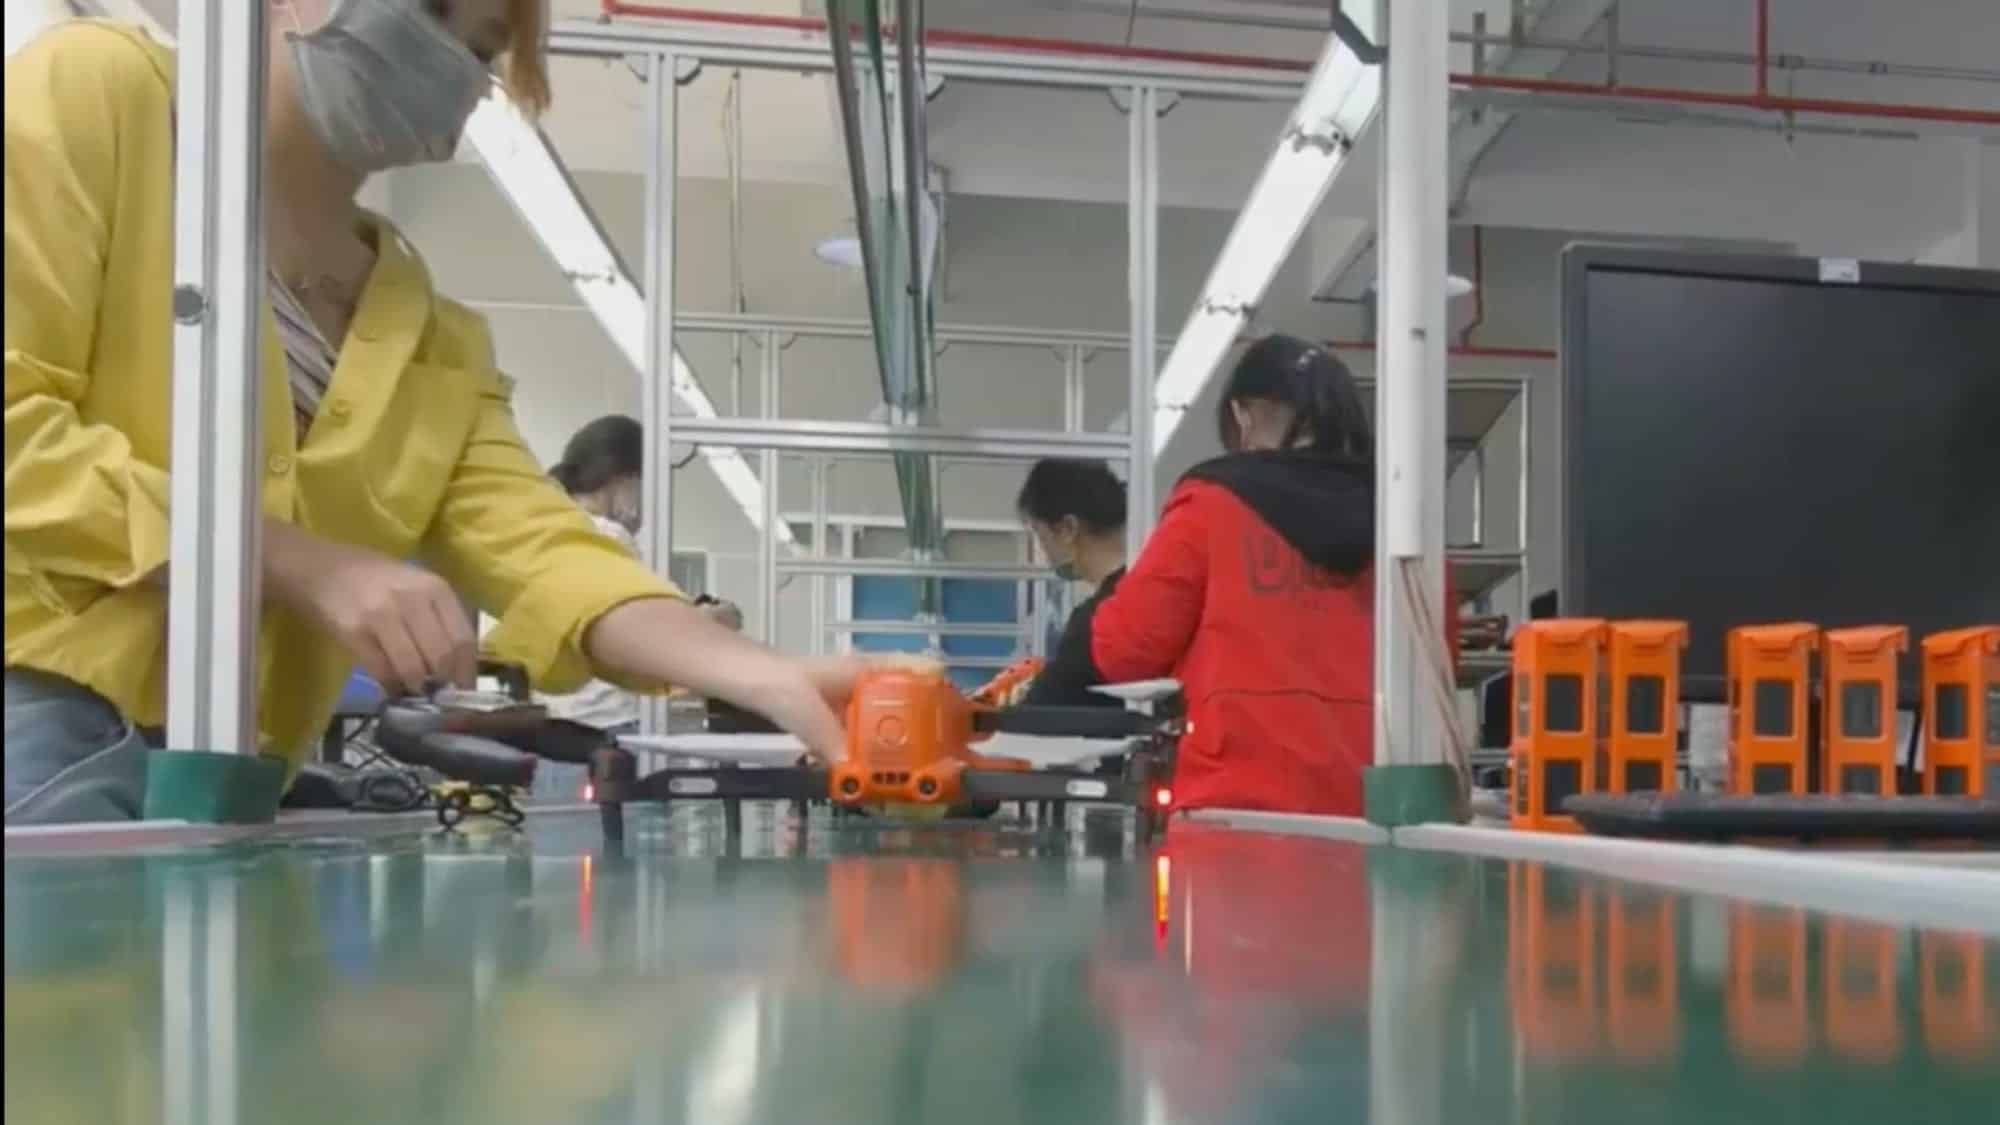 Sneak-peek into Autel Robotics' production line